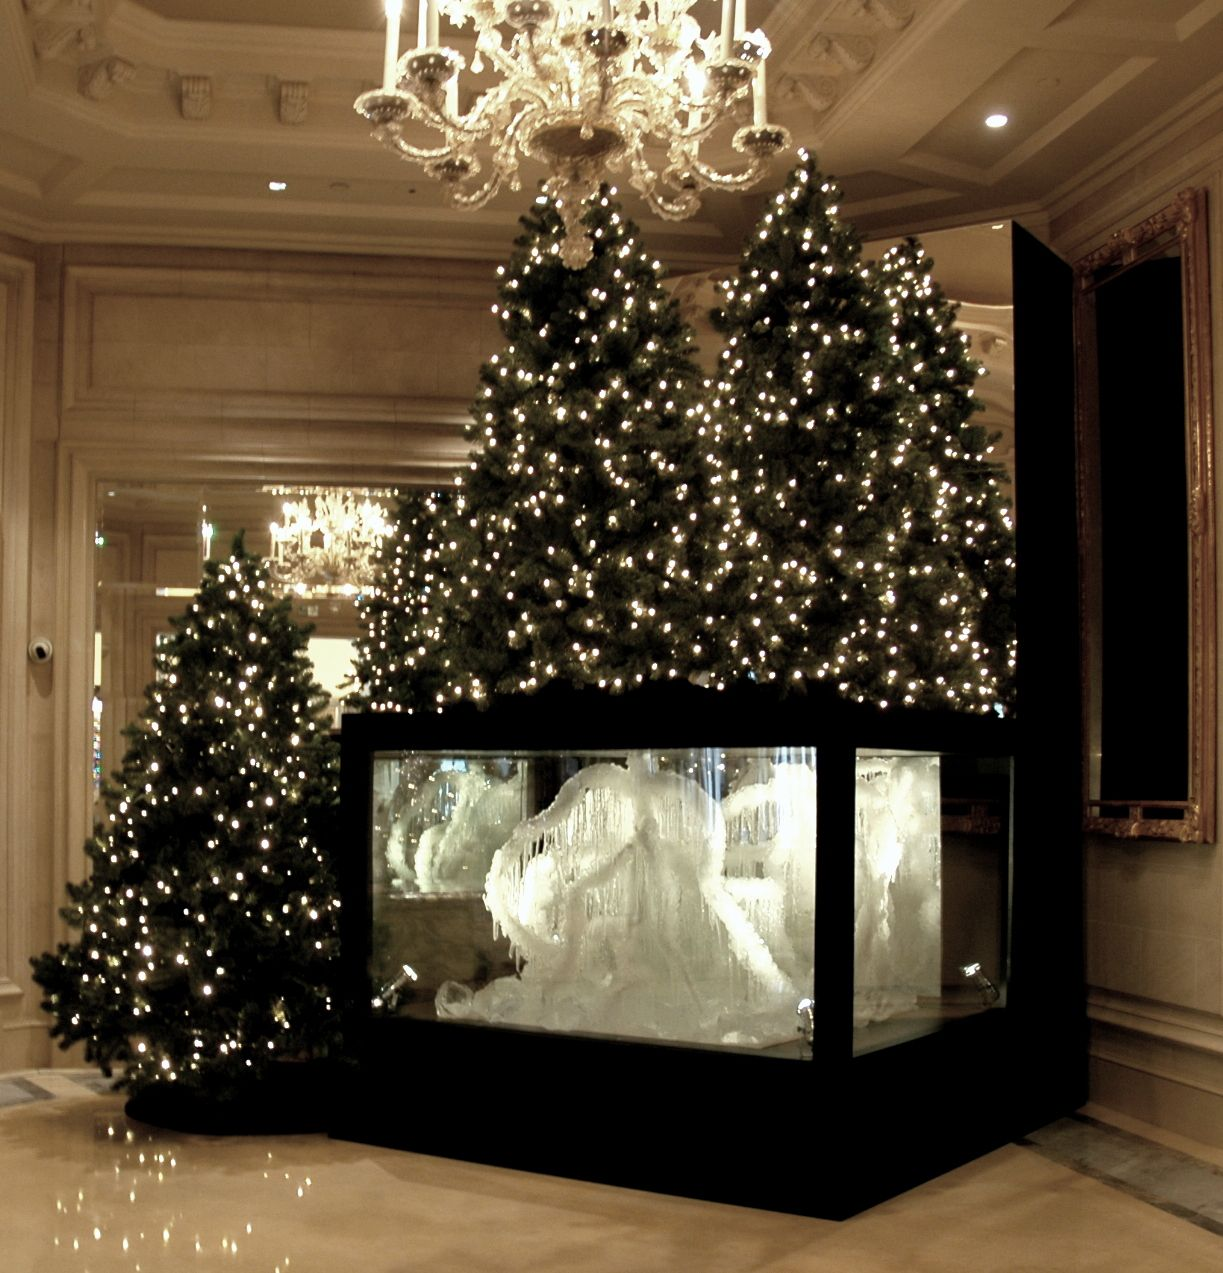 Lighting Of Christmas Tree 2014: This Year, @Four Seasons Hotel George V Paris Has Made The